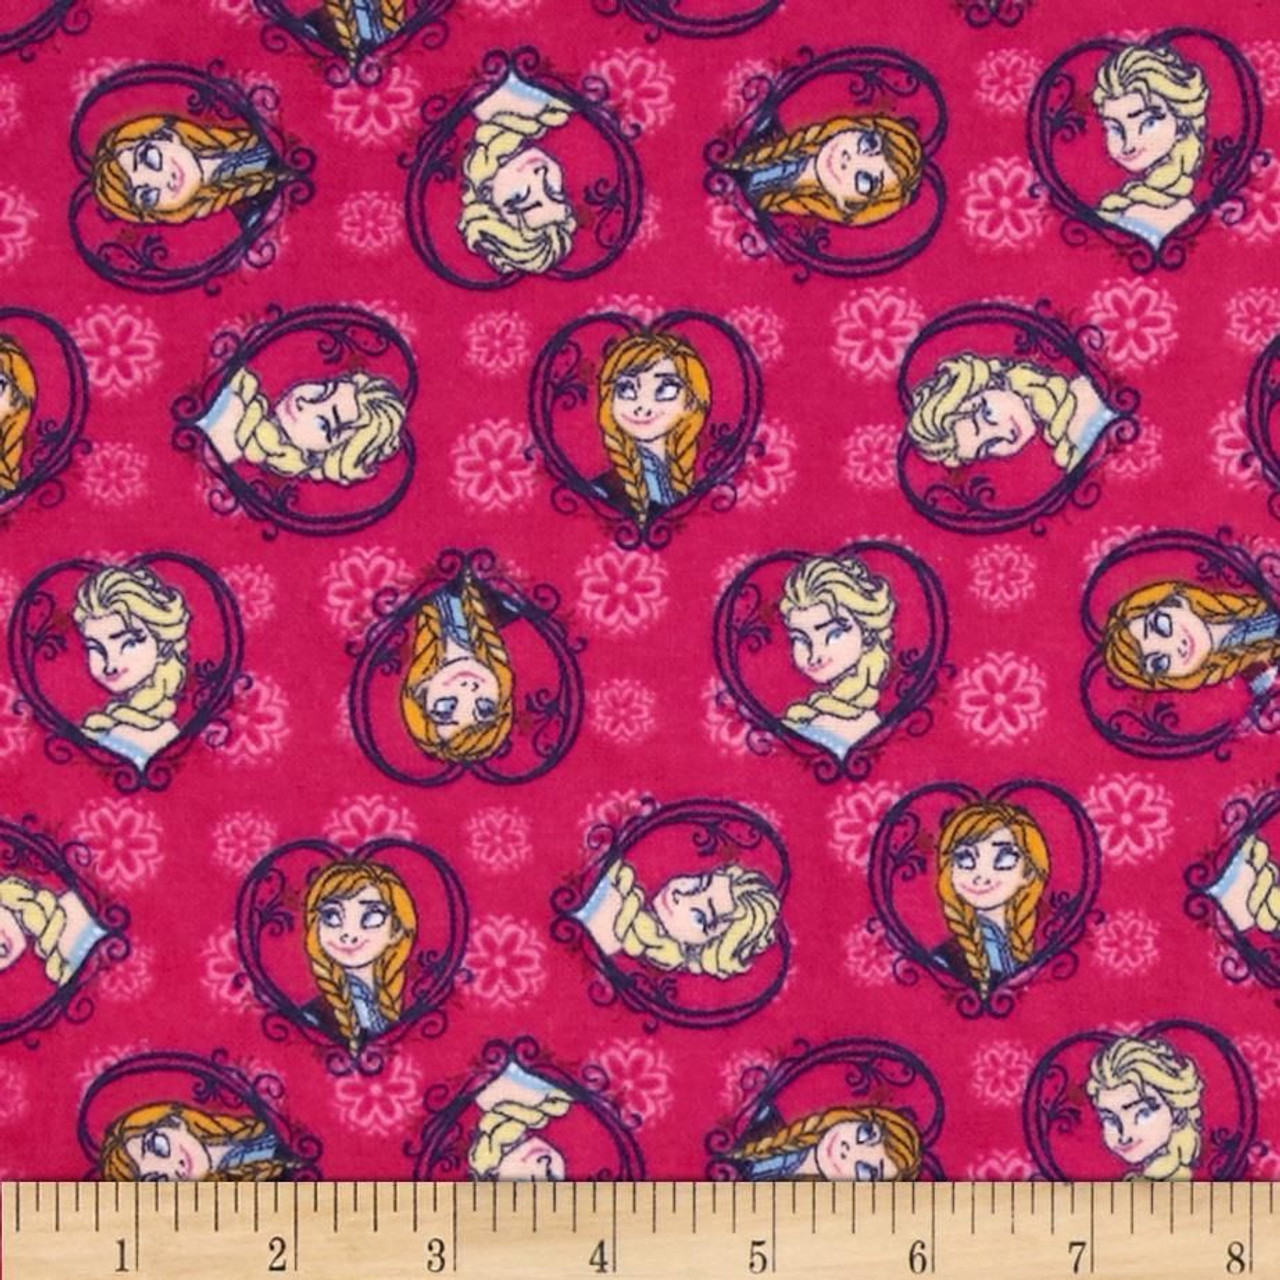 2 yards of FlannelLicensed Disney Princess cotton fabric